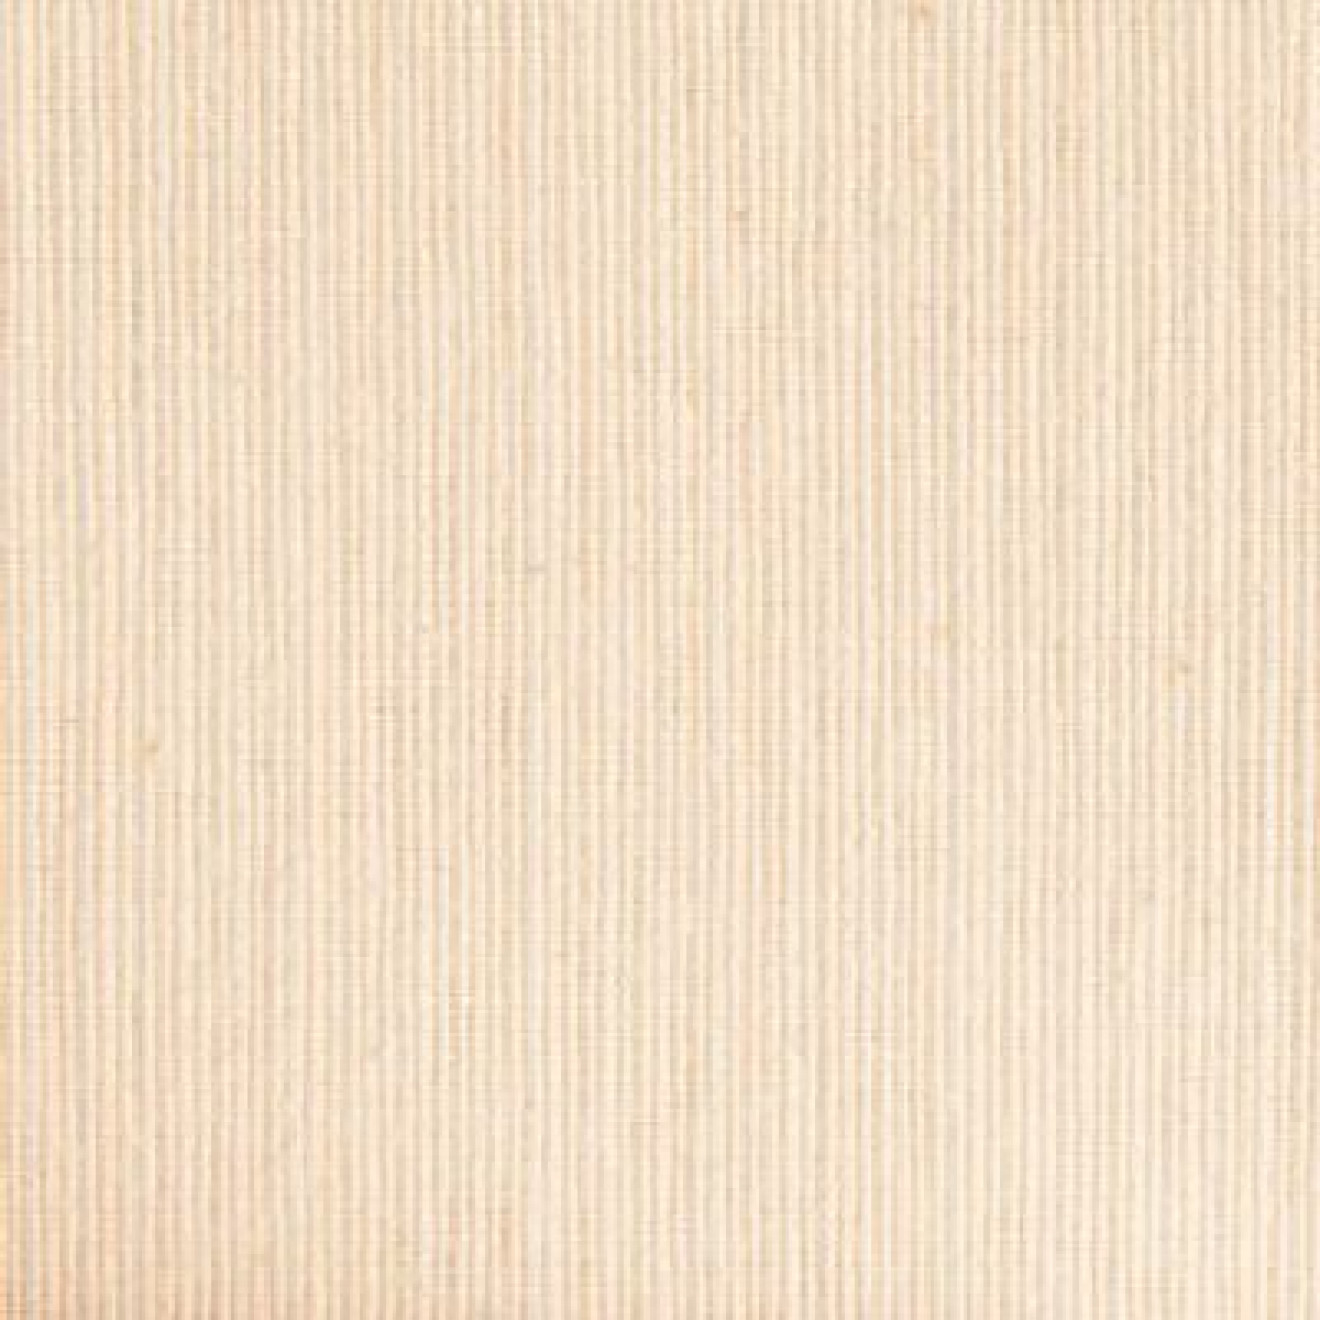 Rolle - Acrylstoff Loneta Color 105